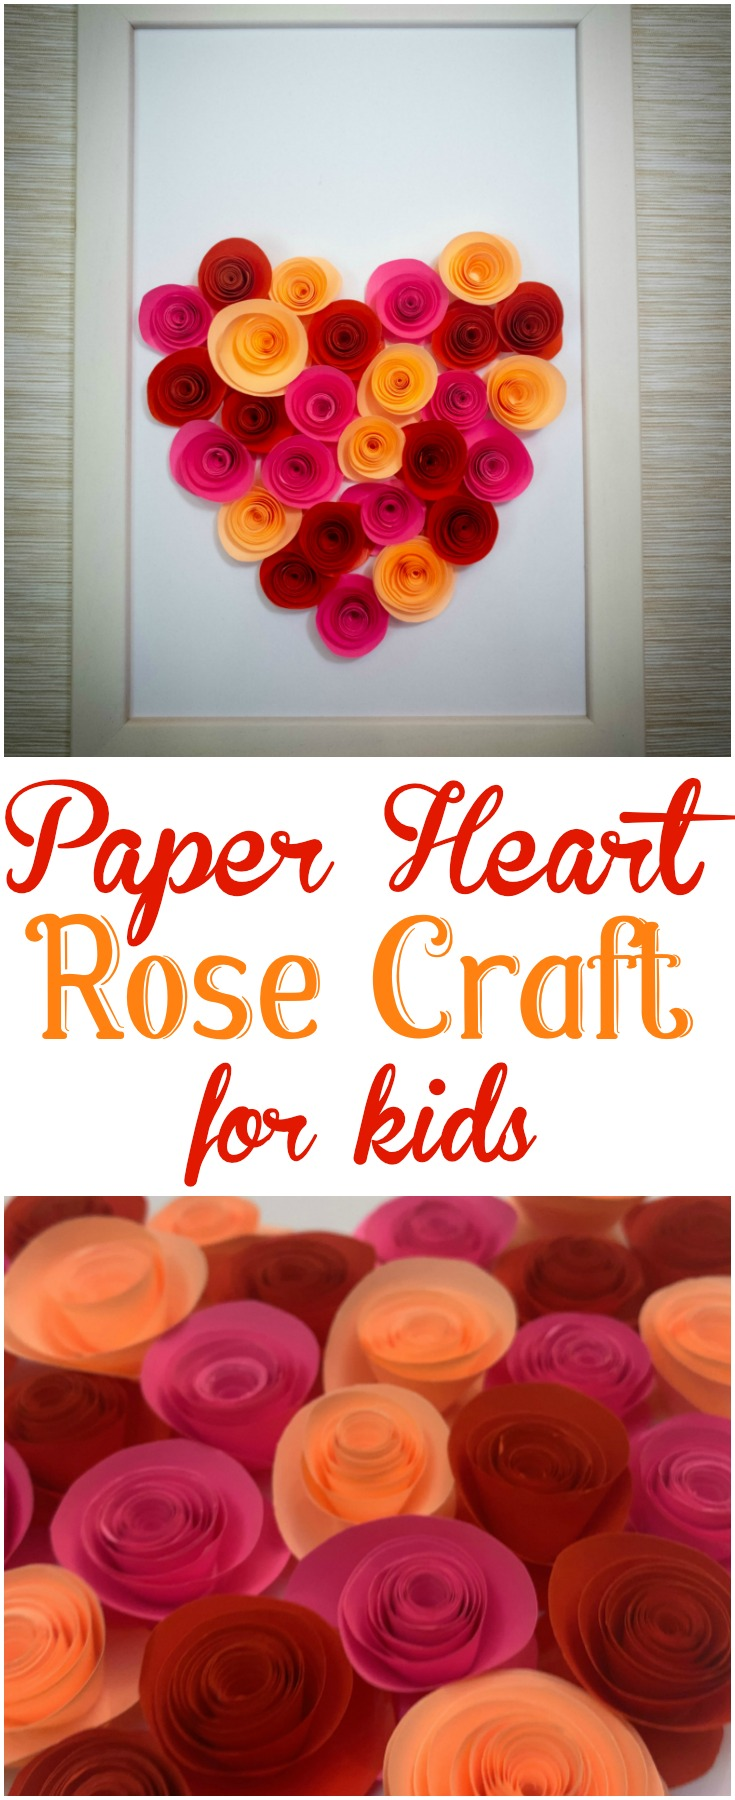 It's all about hearts and roses with this easy Paper Heart Rose Craft, which is a wonderful way to help kids develop patience and fine motor skills. #ValentinesDay #MothersDay #Rose #Heart #Mom #Grandma #Kids #Craft